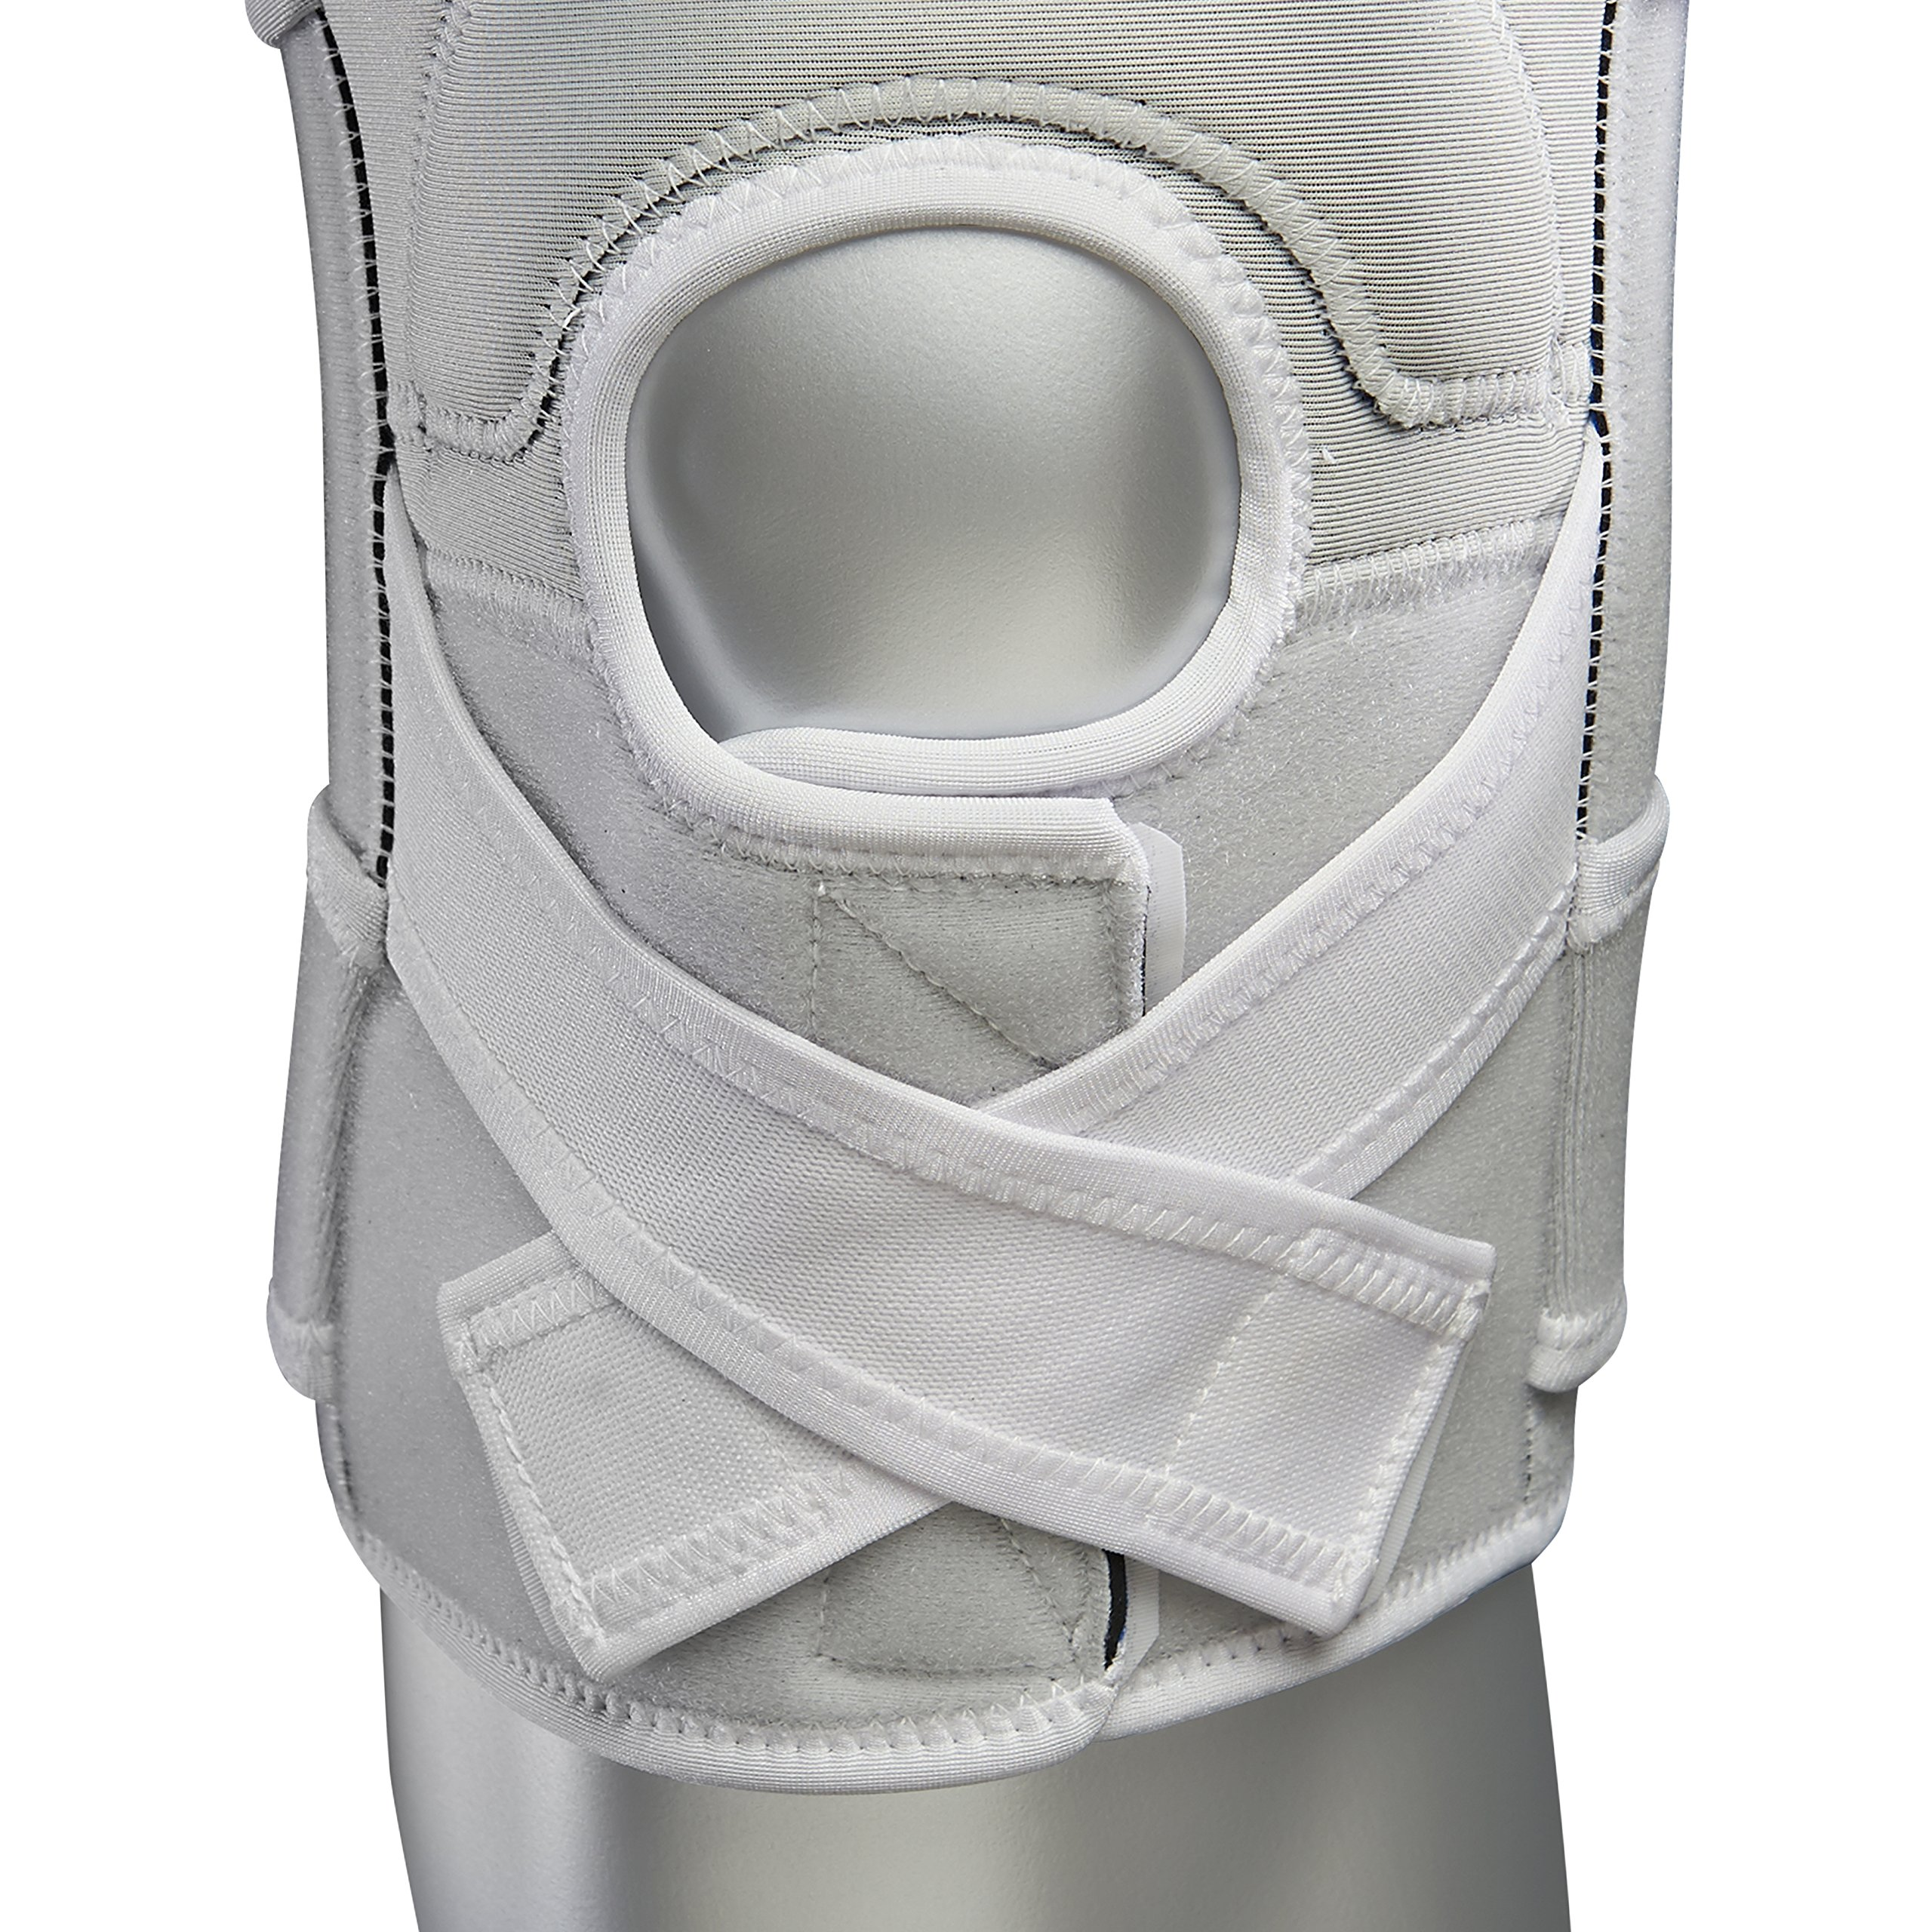 Zamst ZK-7 Knee Brace, White, X-Large by Zamst (Image #2)